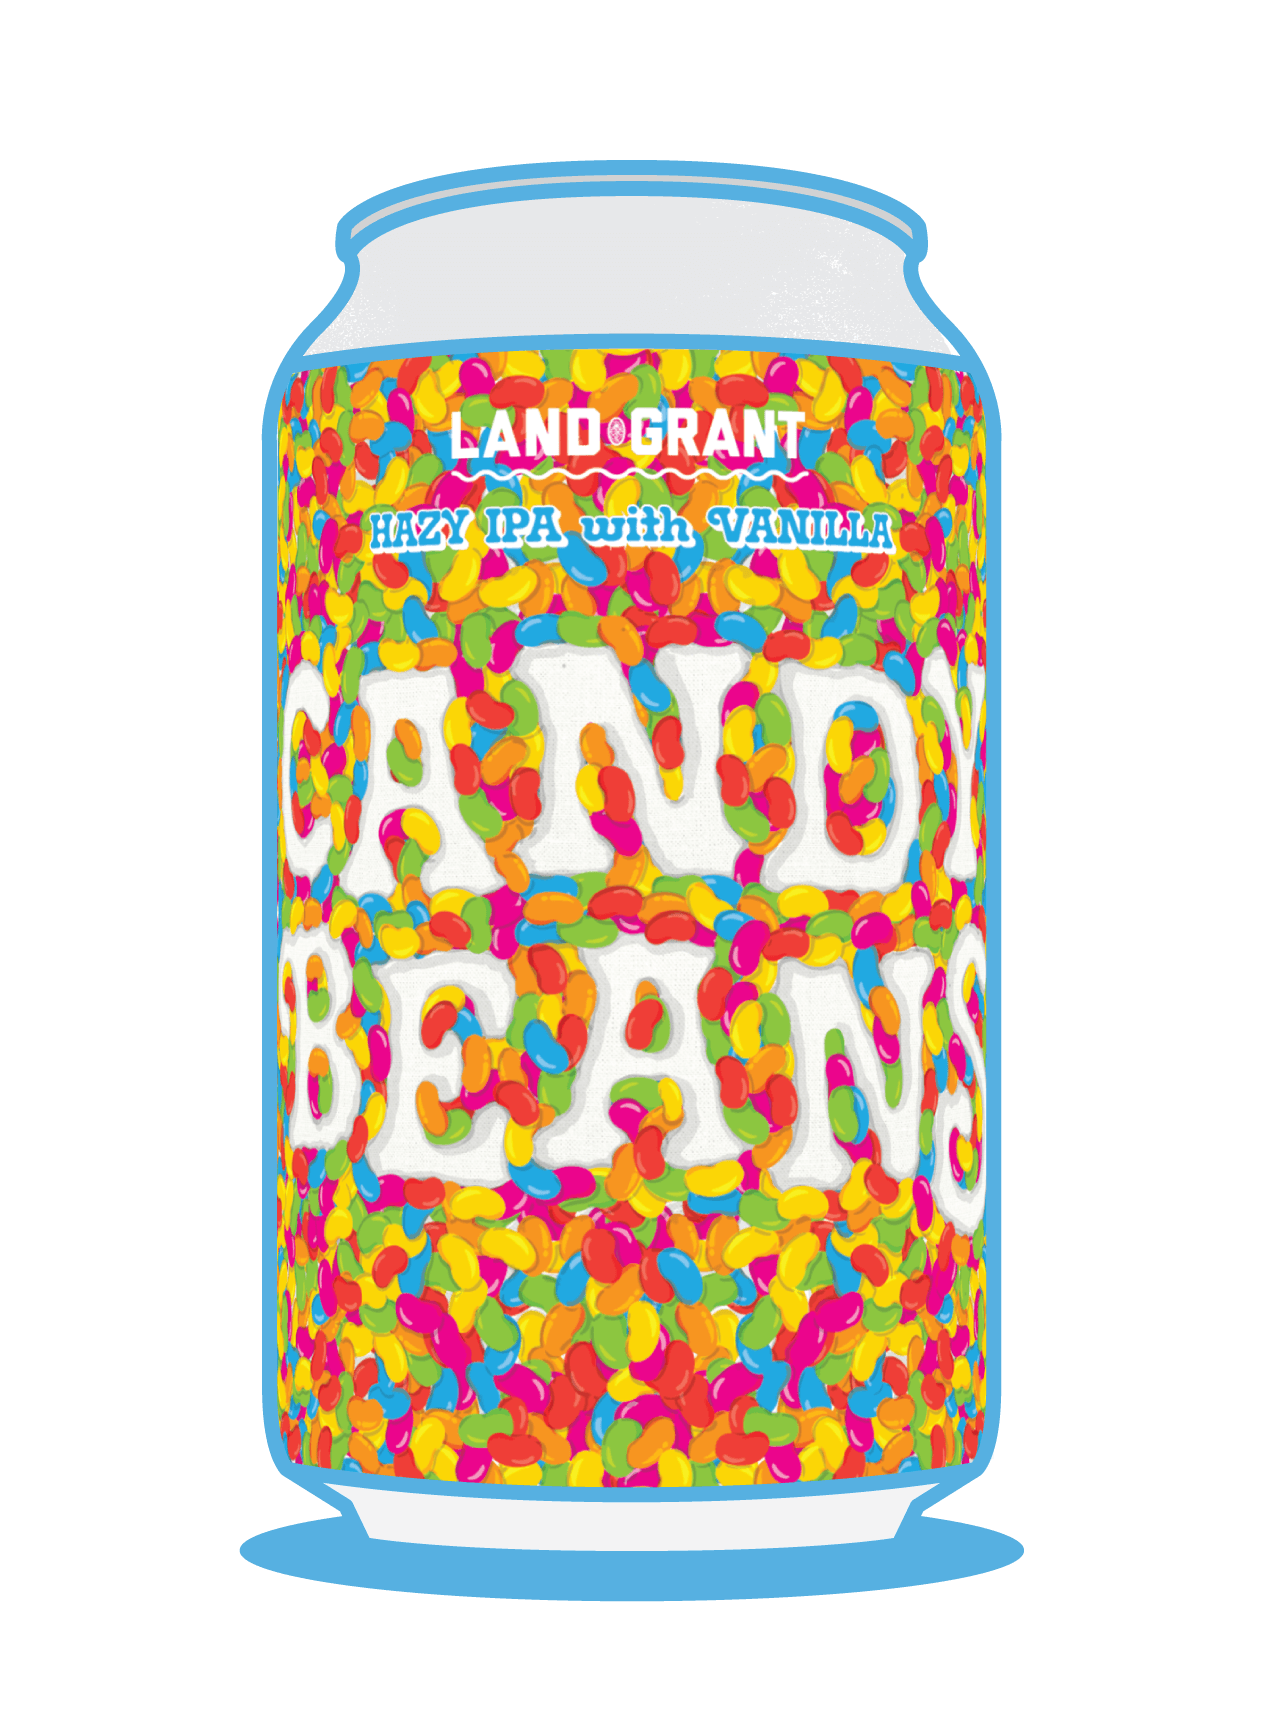 Candy Beans Image